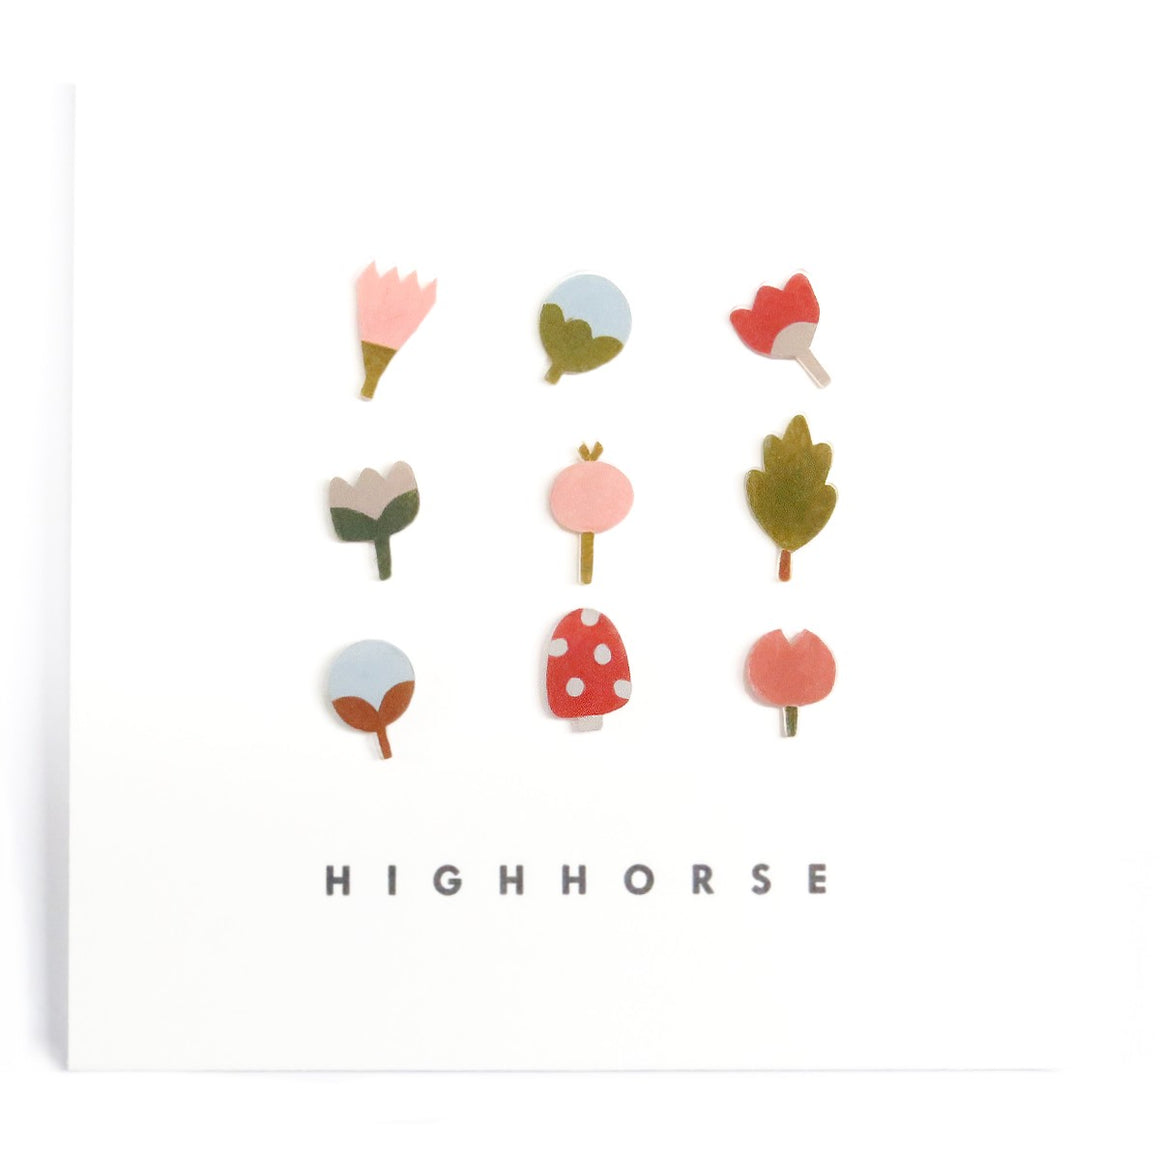 Image featuring a set of nine earrings including an assorted group of leaves, mushrooms and flowers - with the word HighHorse on the bottom